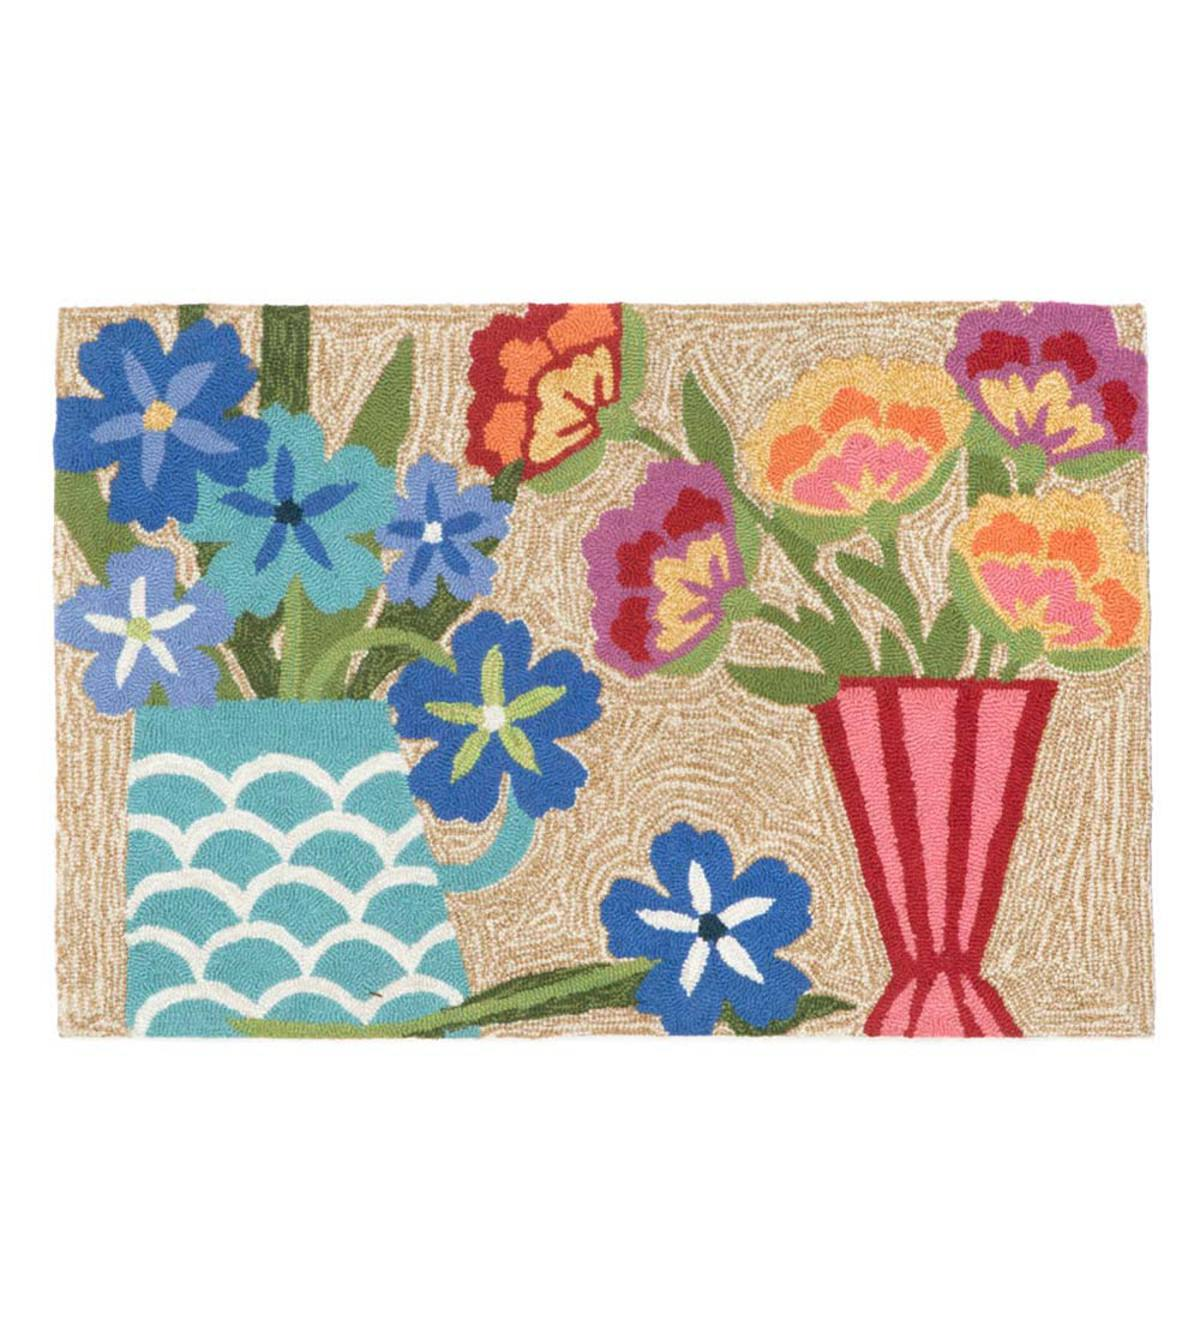 Flowers Still Life Rug, 20&quote;W x 30&quote;L